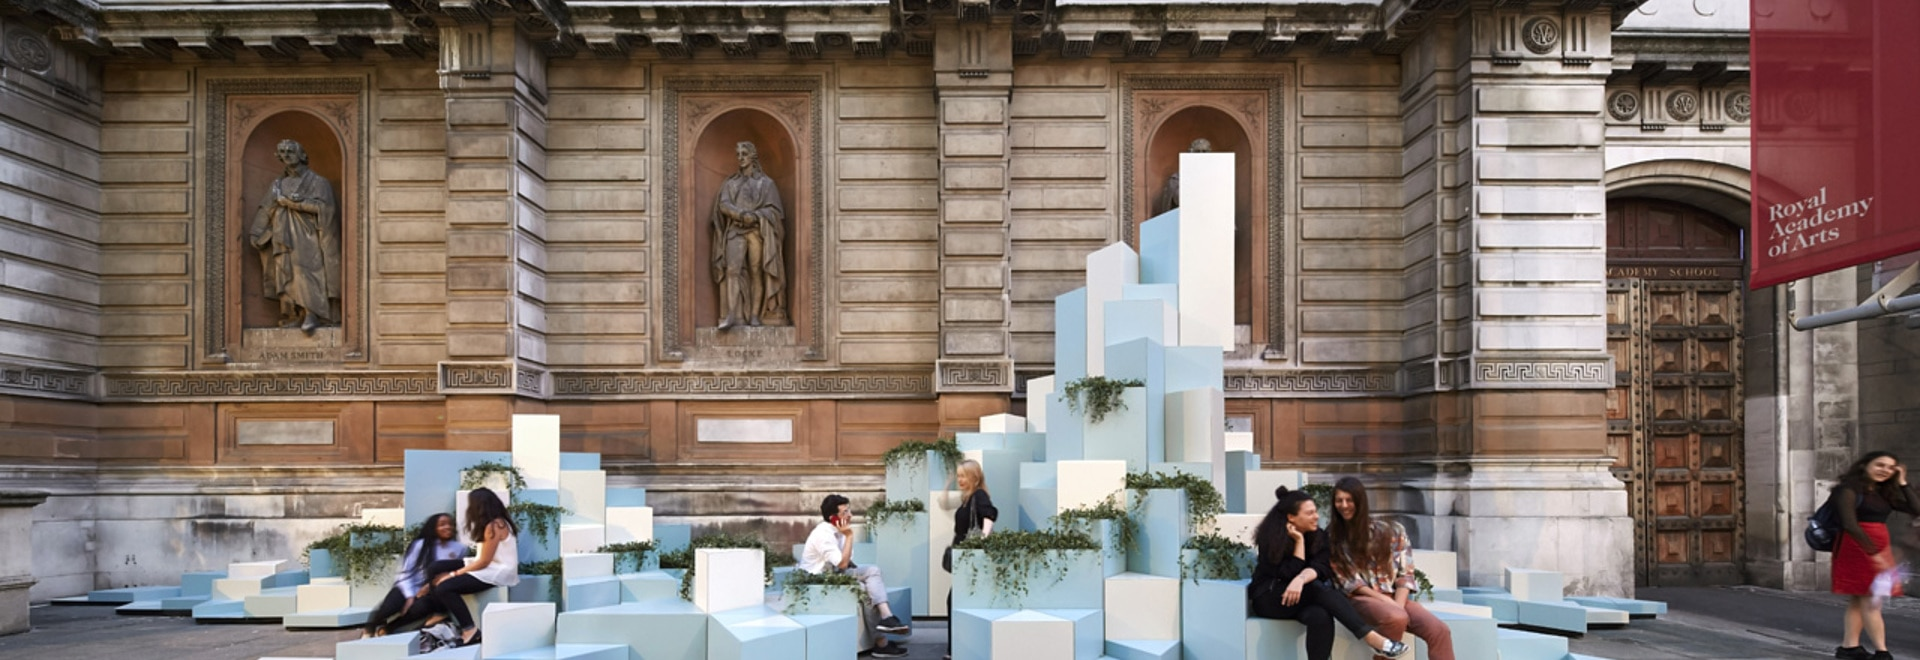 Unexpected Hill, SO Architecture Ideas, Commissioned by the Royal Academy of Arts and Turkishceramics